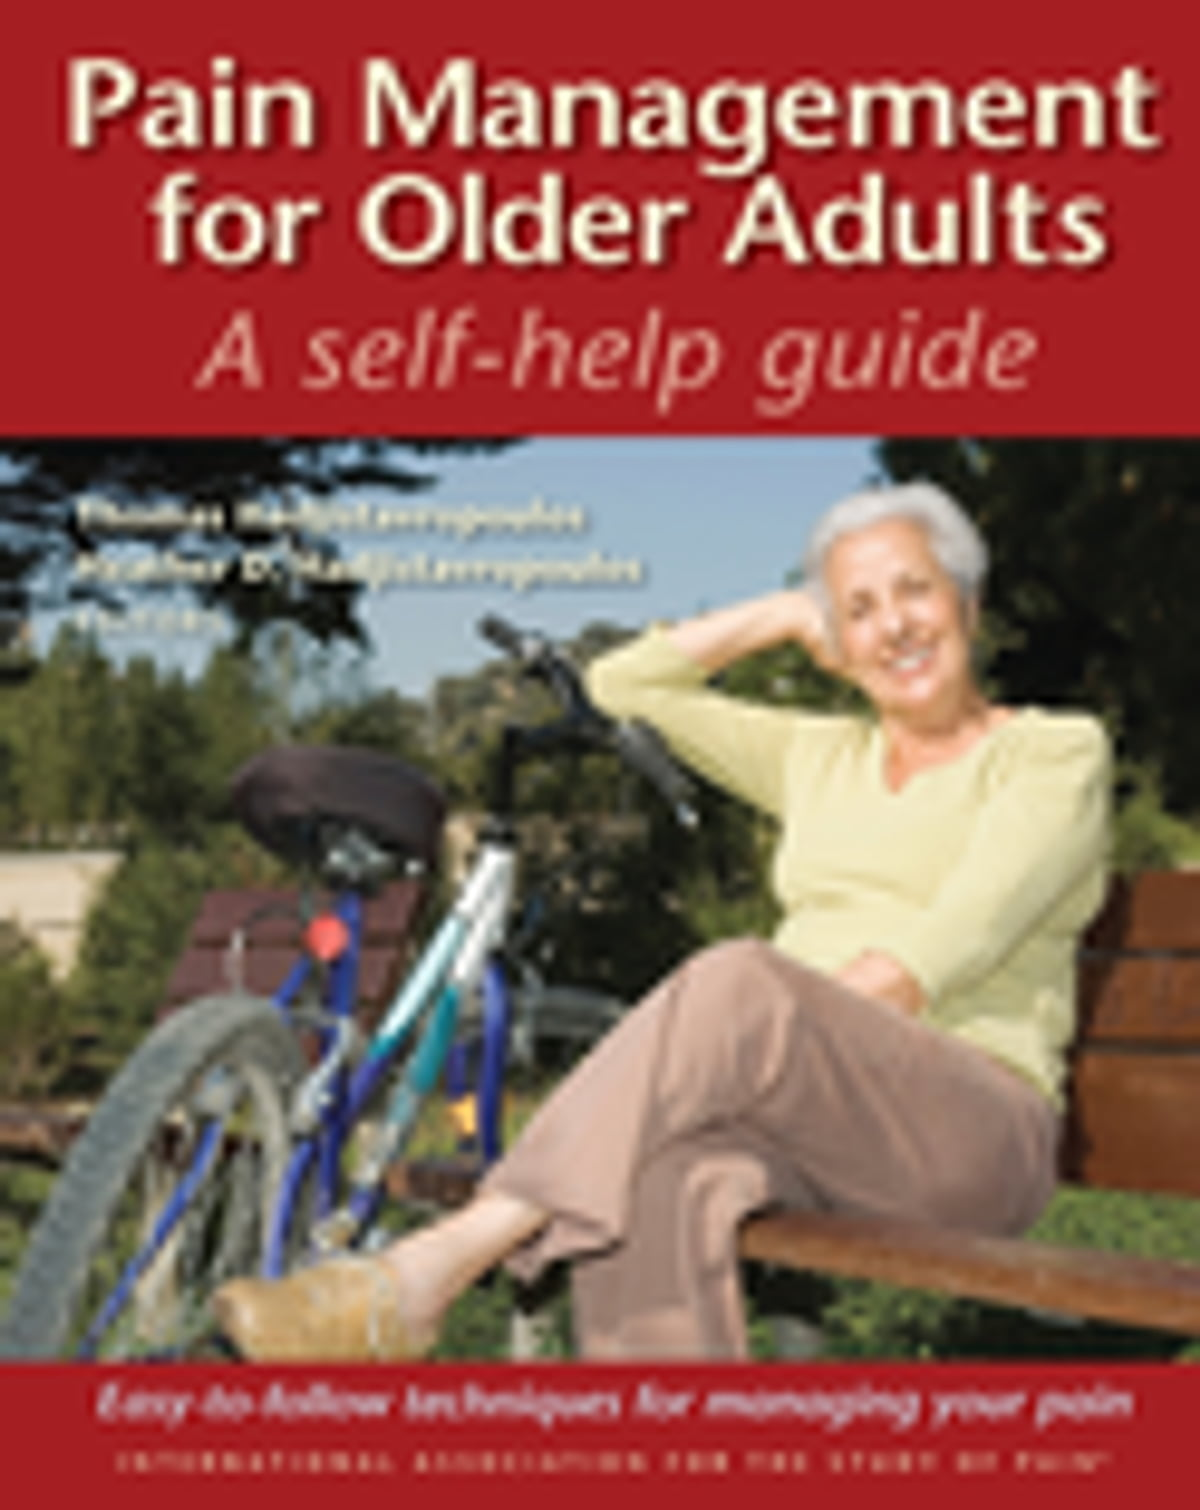 Pain Management for Older Adults eBook by Thomas Hadjistavropoulos -  9781496331793 | Rakuten Kobo